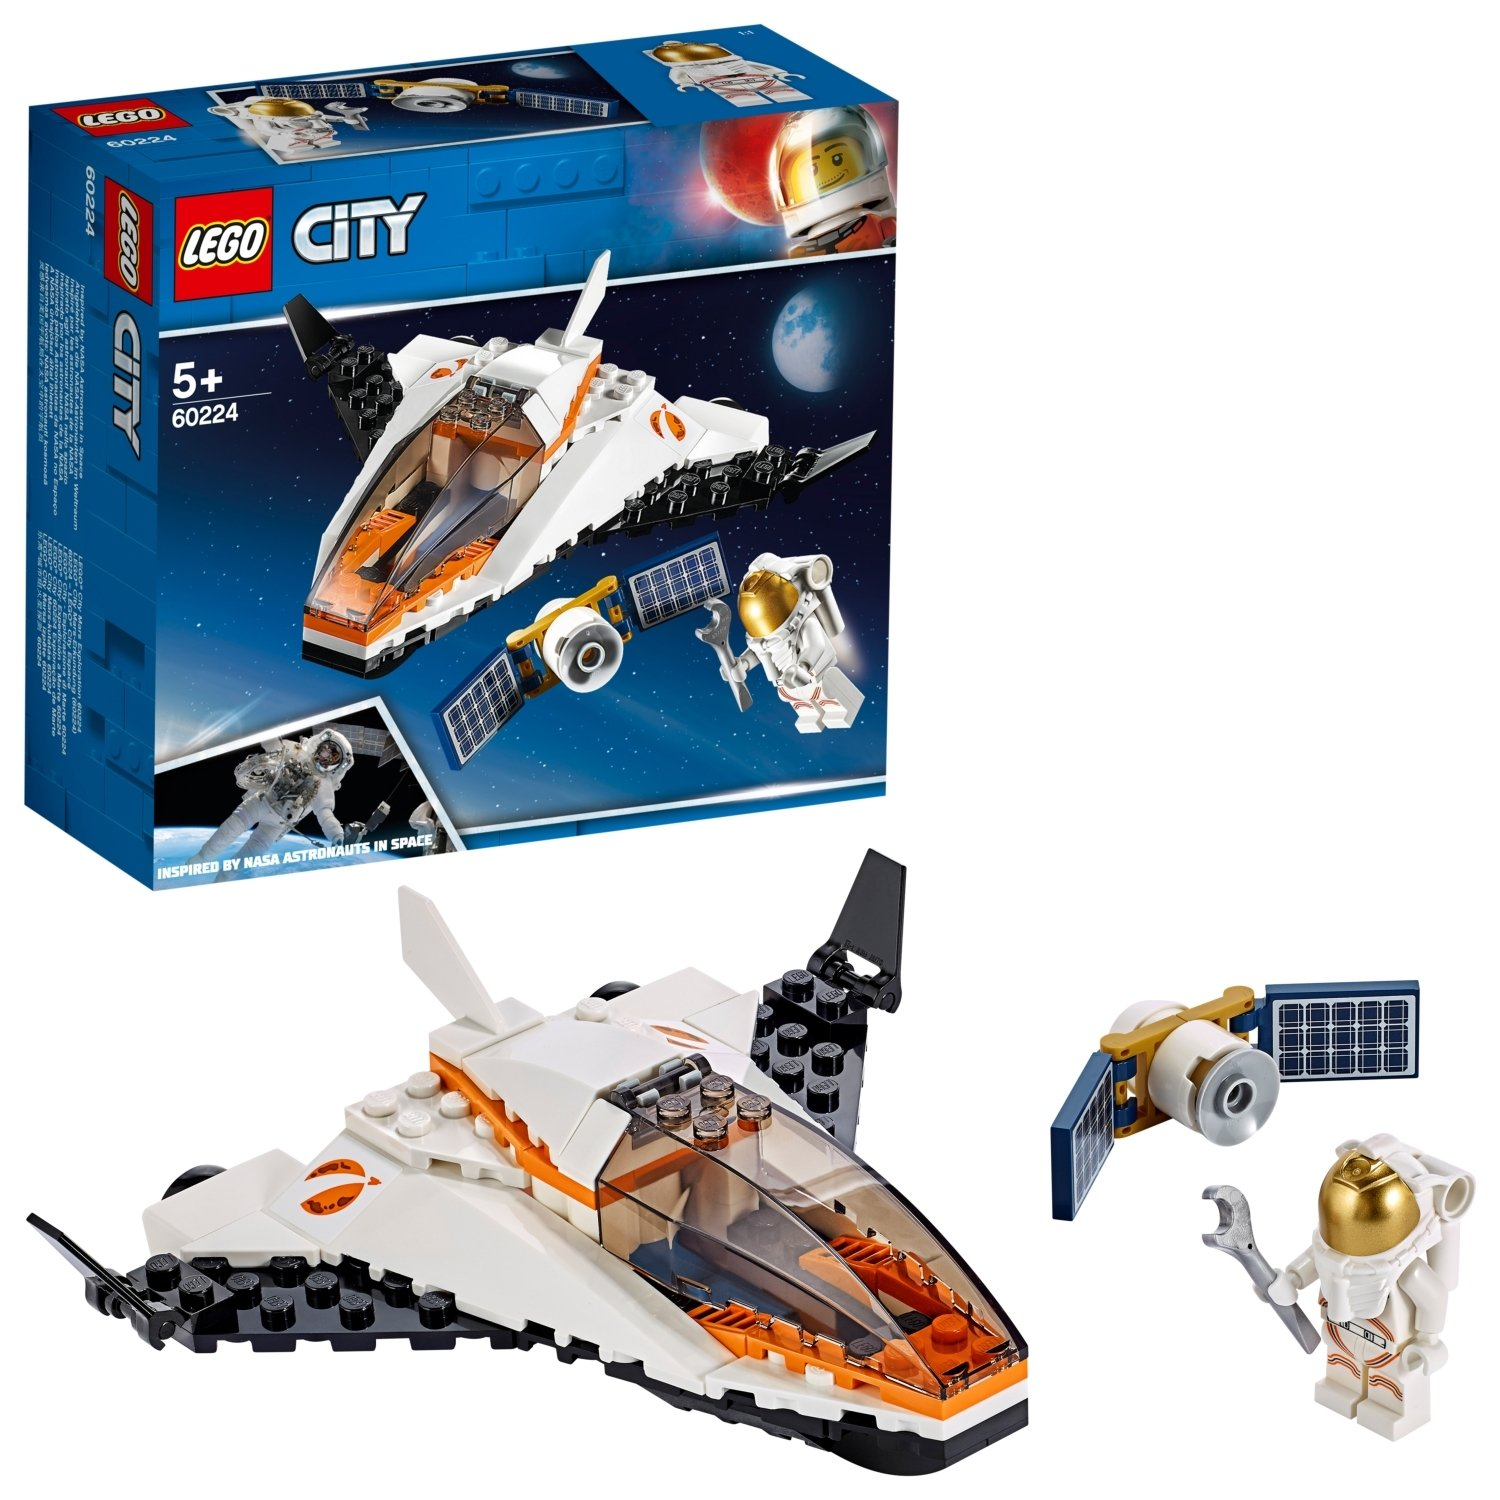 LEGO City Satallite Service Mission Playset - 60224